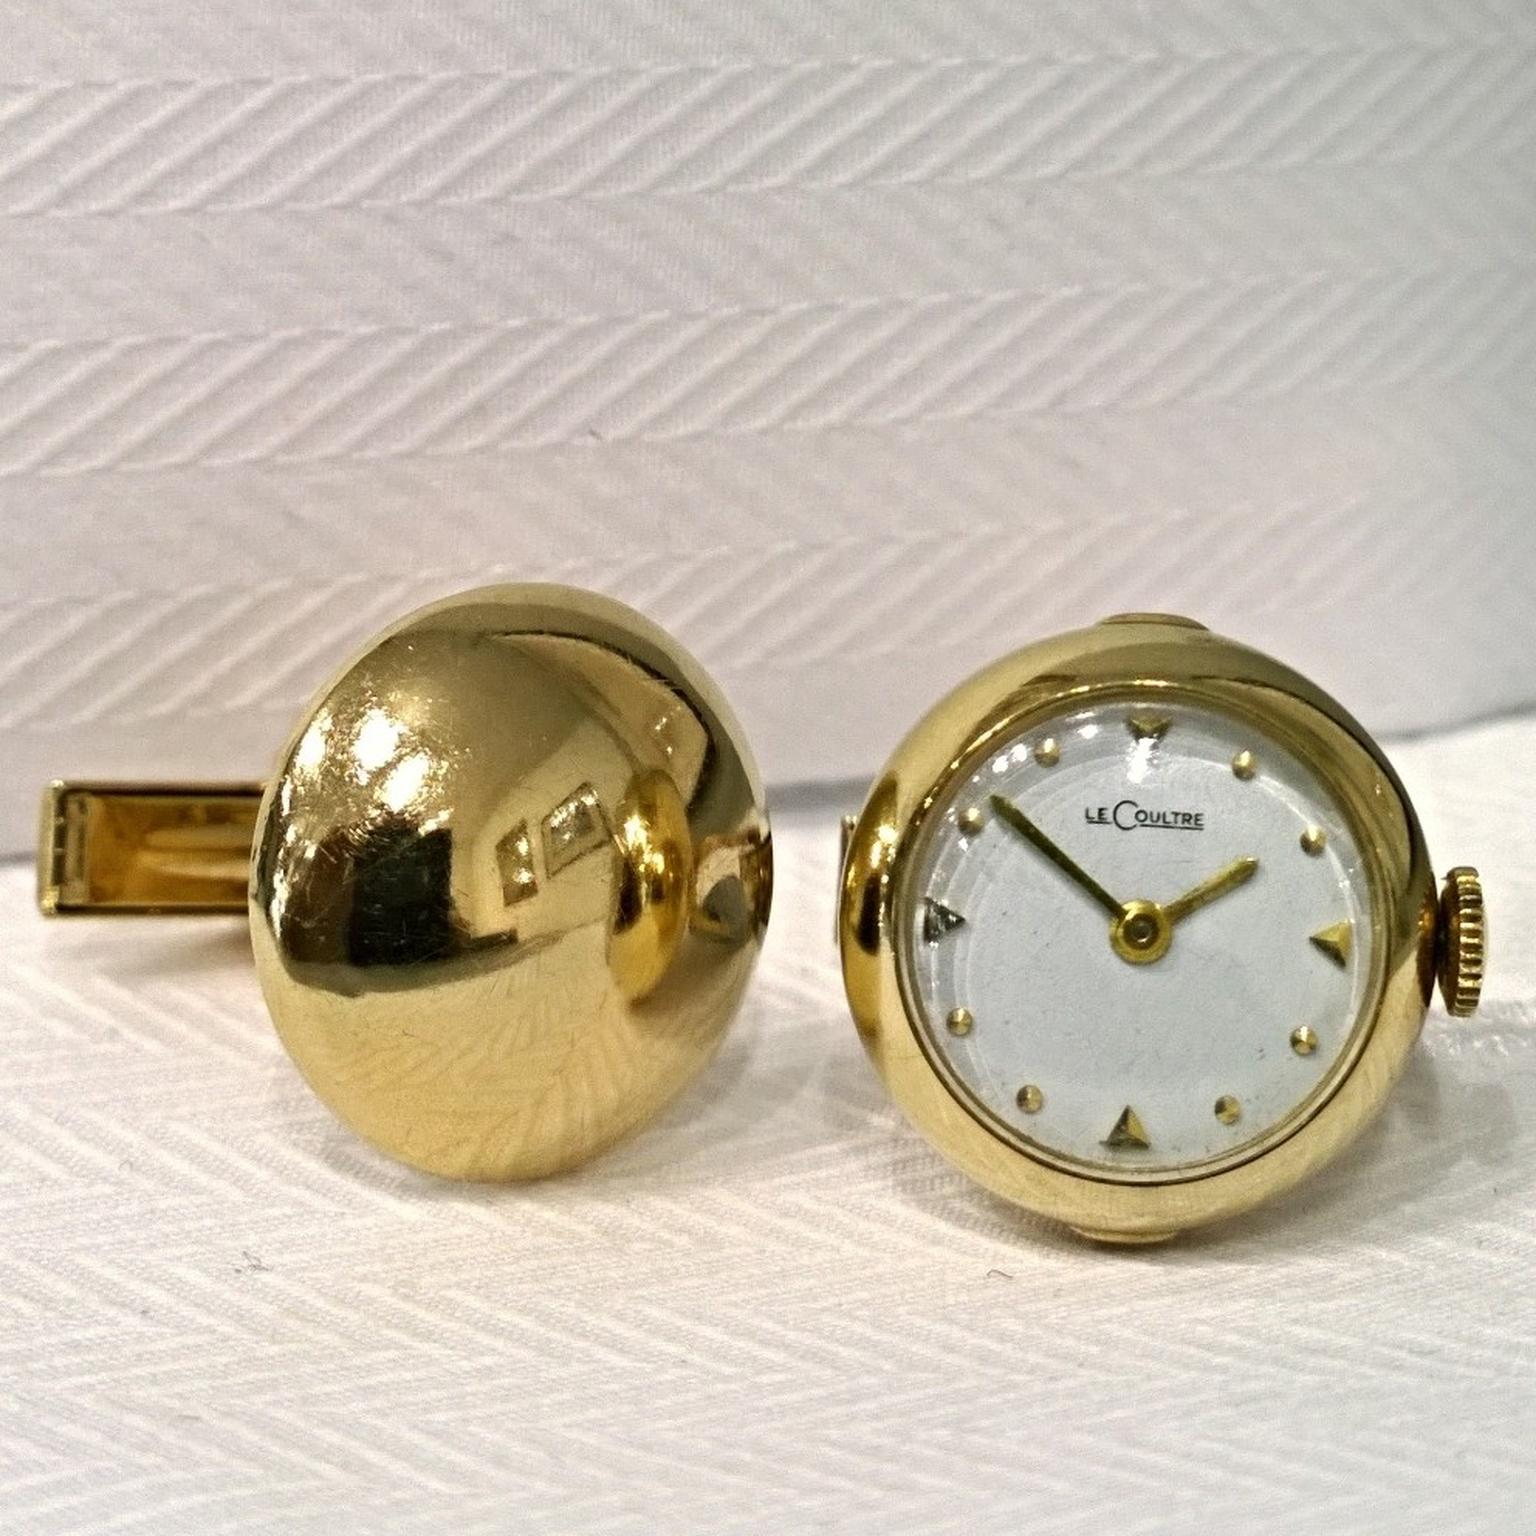 Jaeger LeCoultre vintage cufflink watches